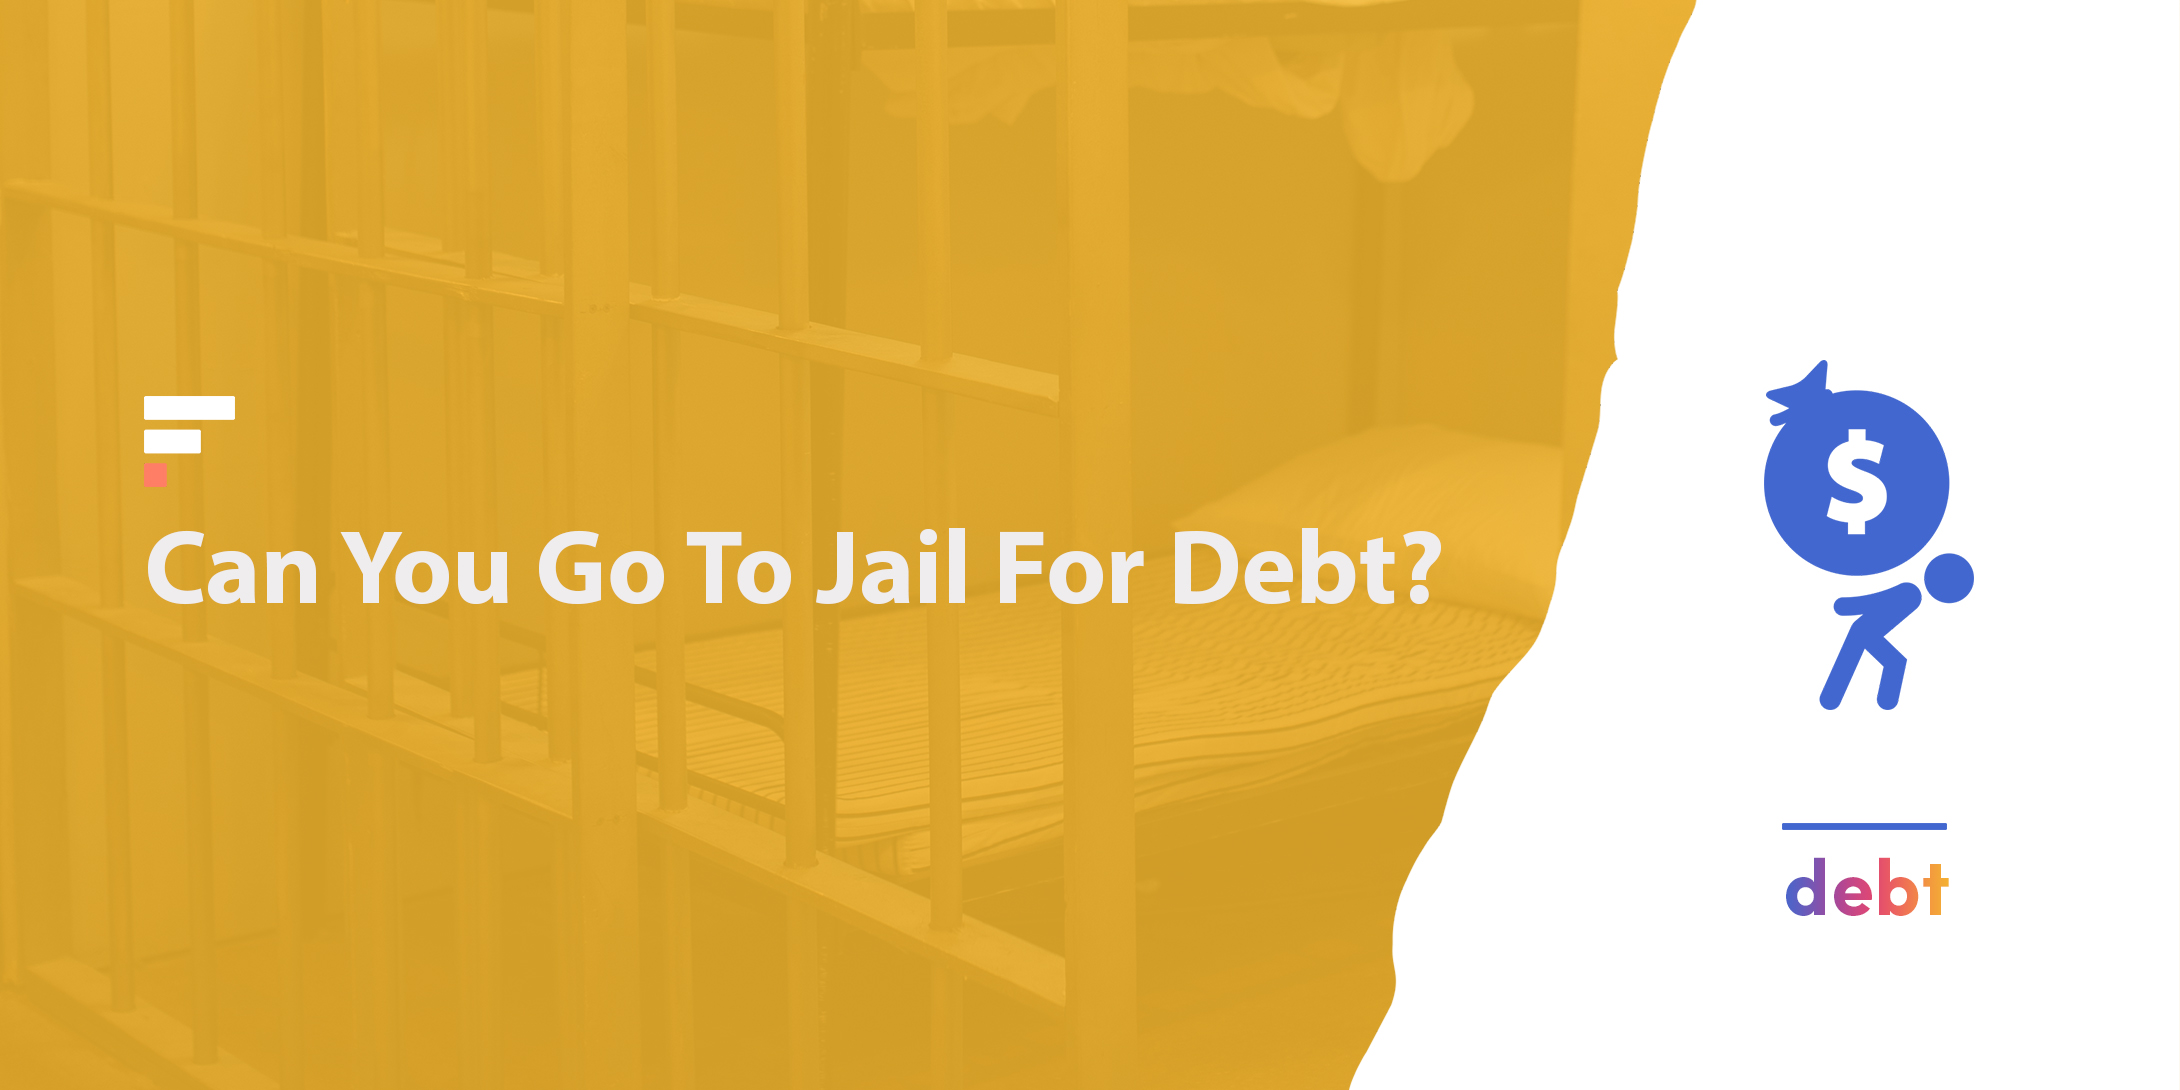 Can You Go To Jail For Debt?